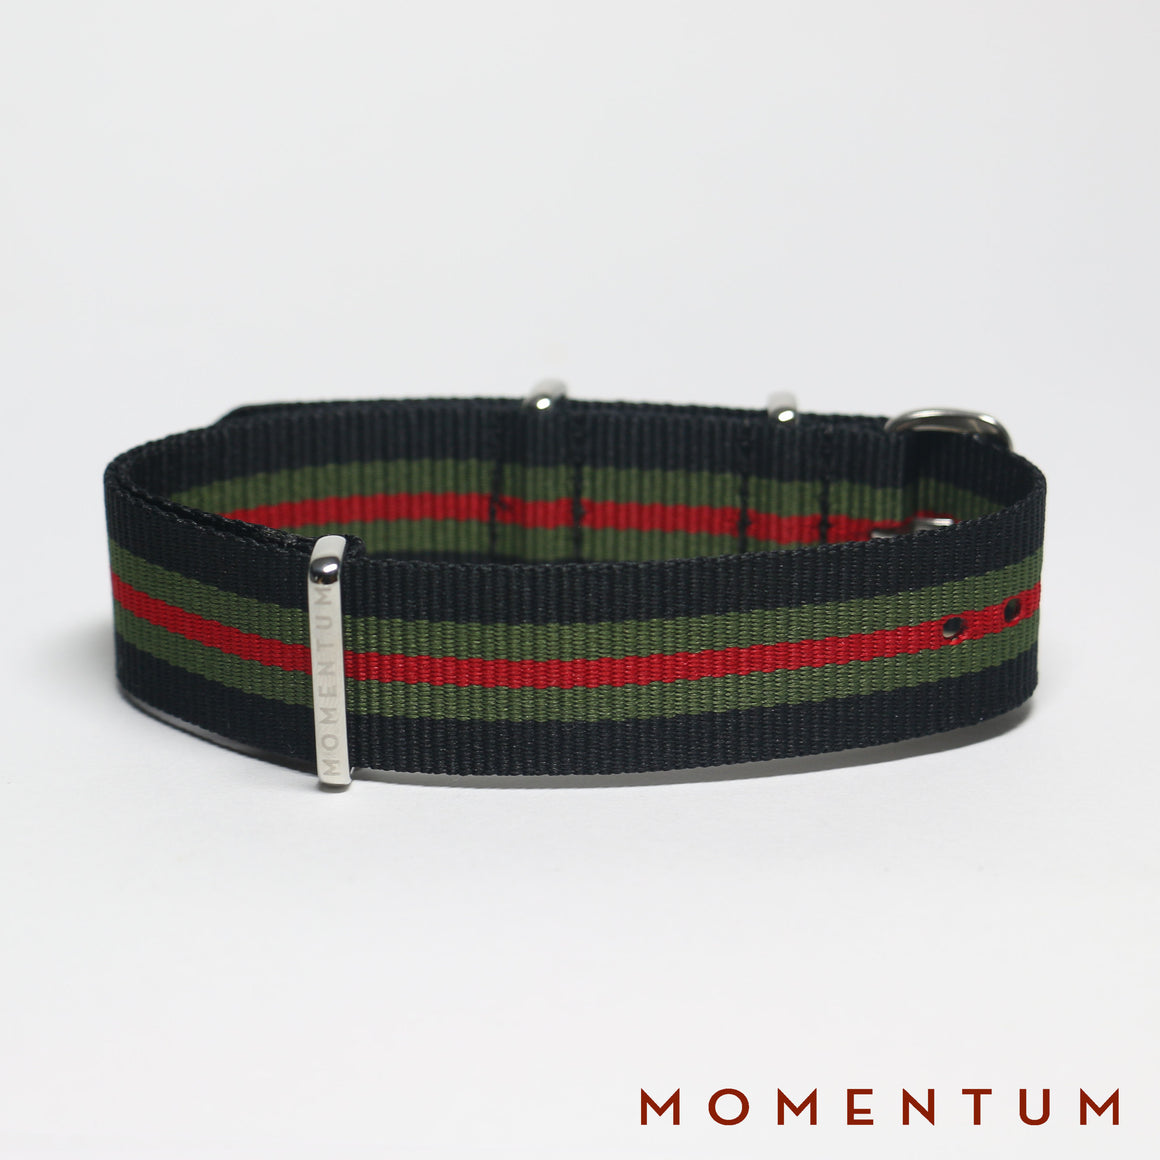 Nato Strap Black - Army Green & Red Striped - Momentum Dubai